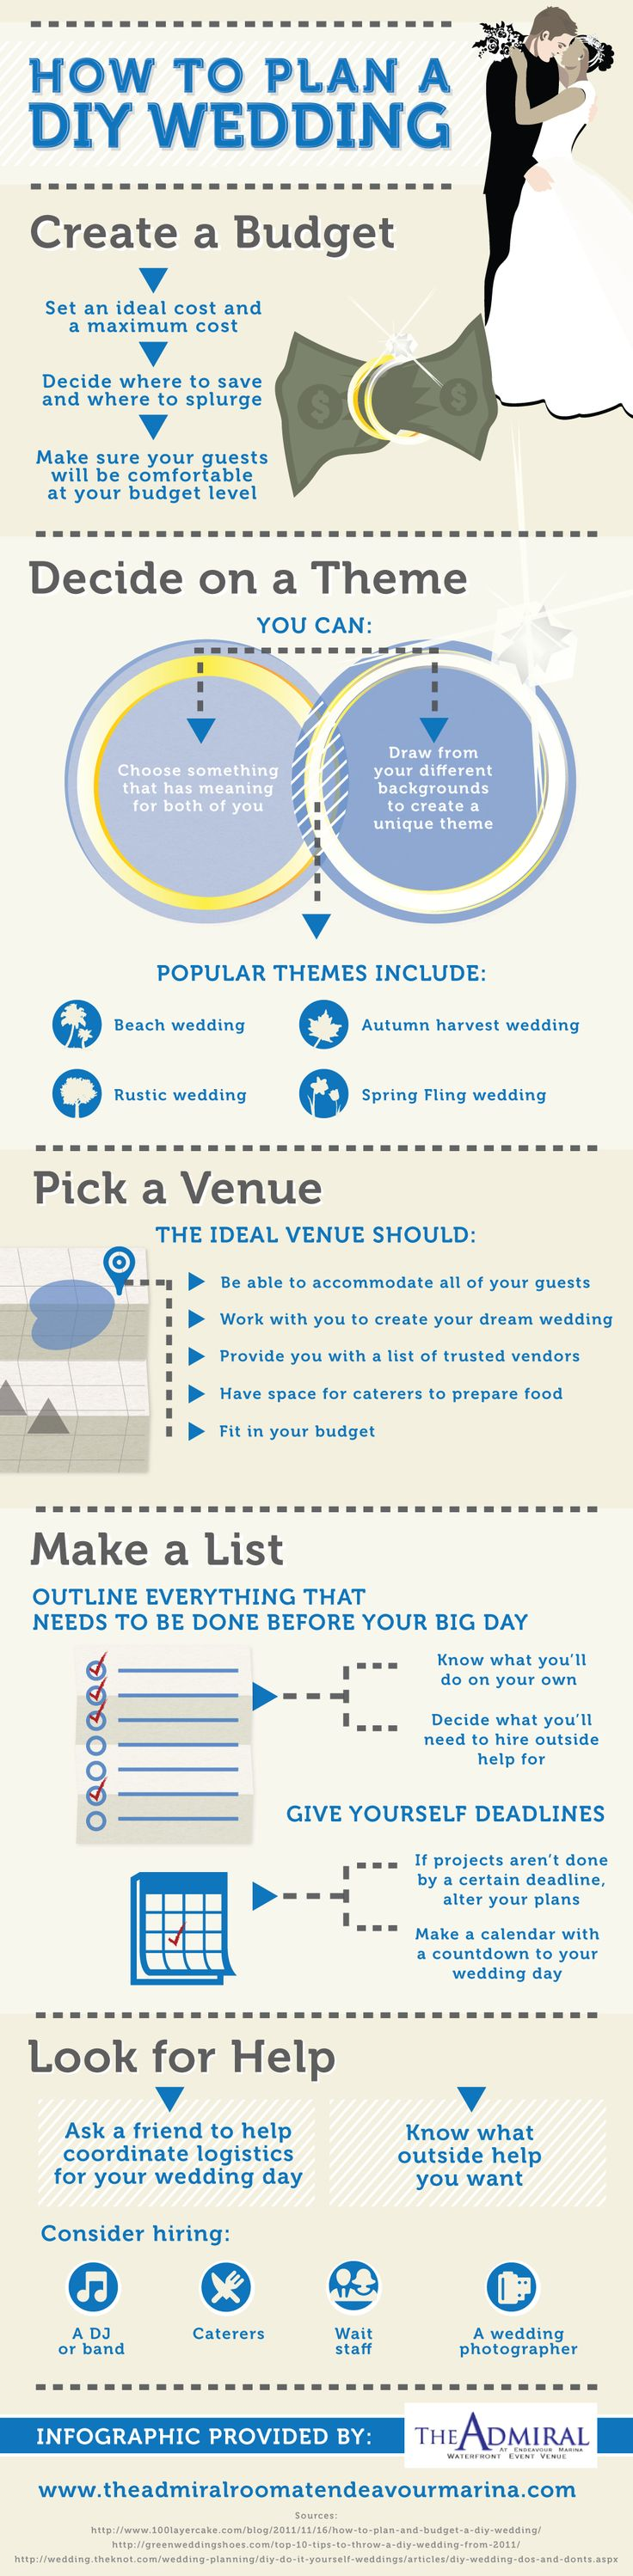 How to plan a DIY Wedding #wedding........@Meagan Finnegan Finnegan Finnegan Finnegan Finnegan wesson-deleo maybe some good ideas!?!